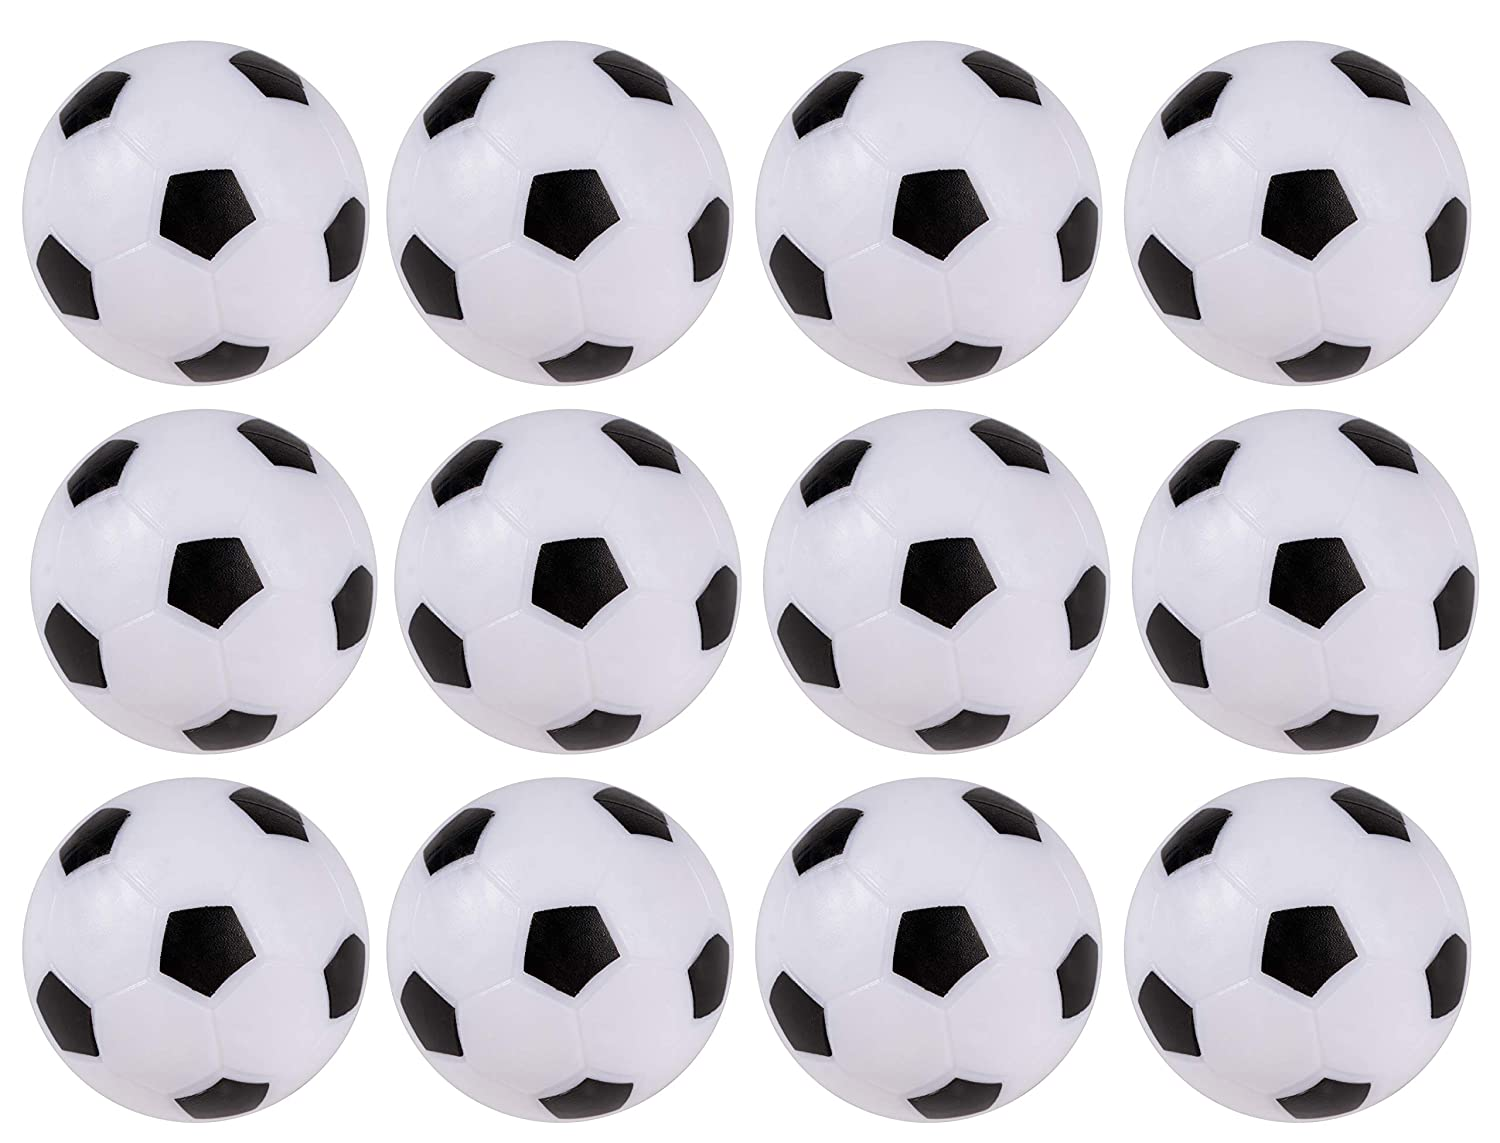 12-pack Foosball Balls Mini Table Footballs Replacements - Official Size 36 mm Juvale